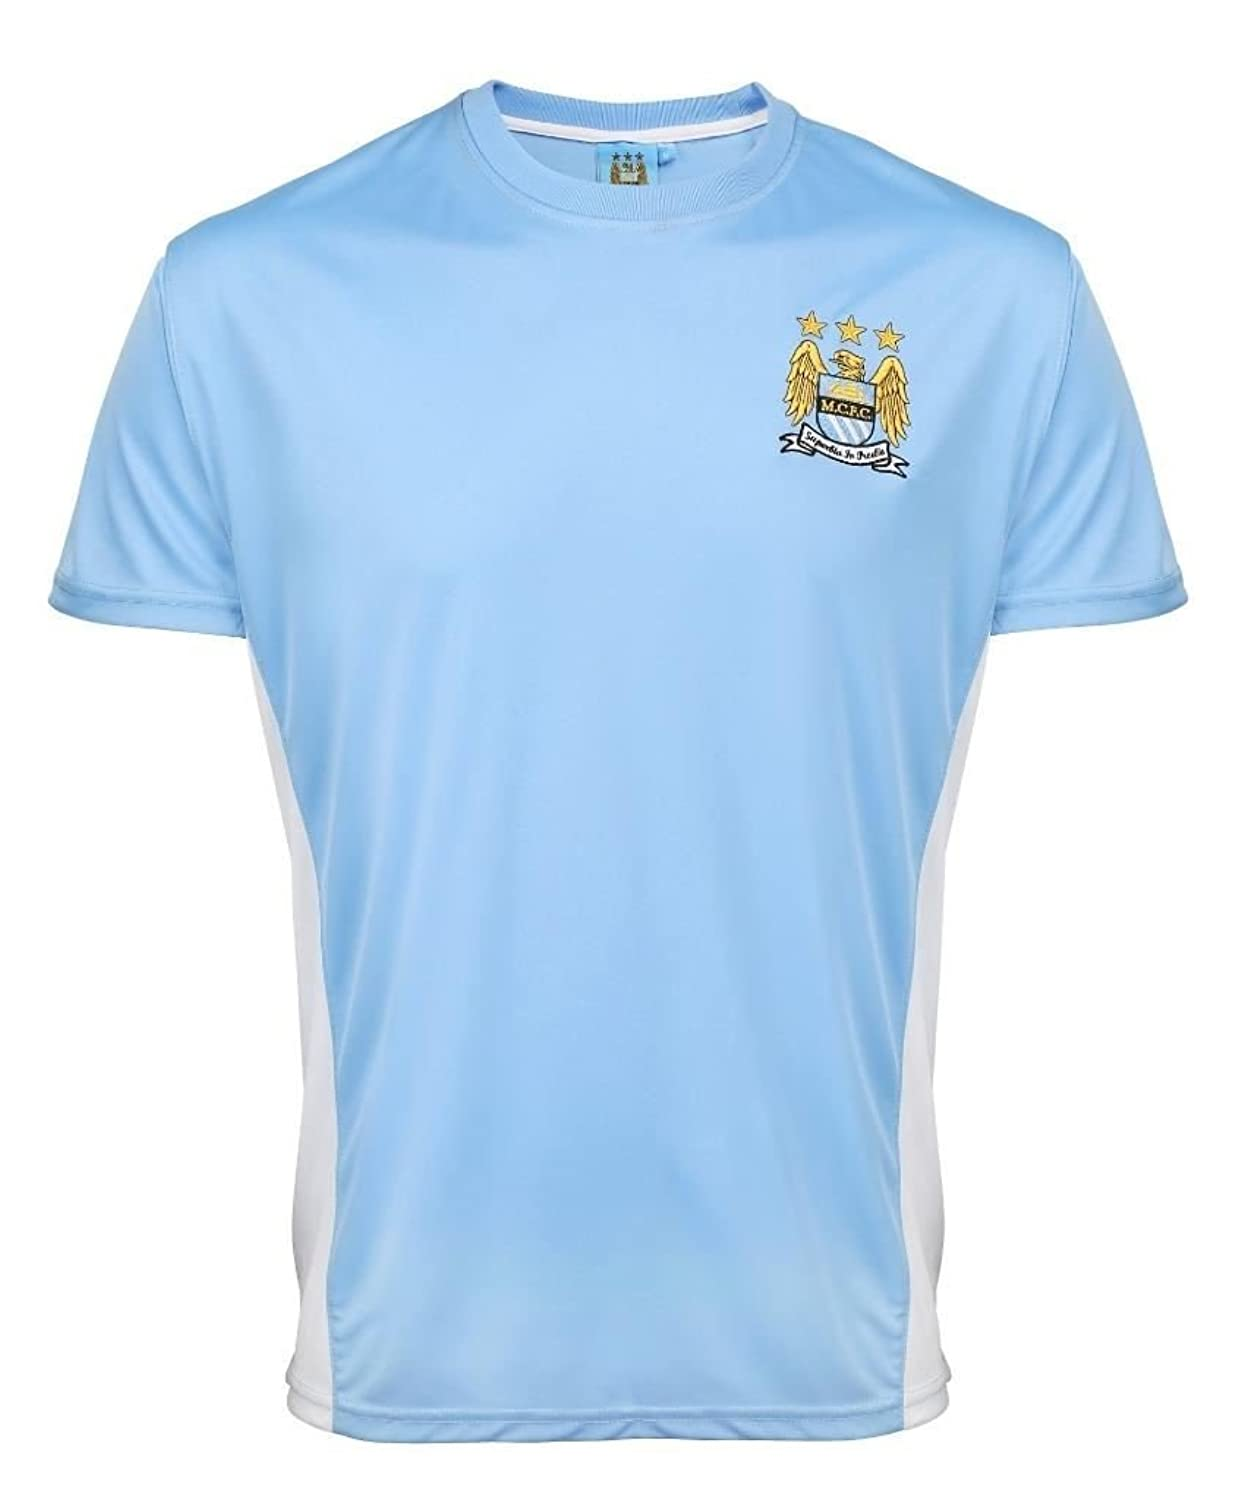 Man CityシャツGirl 's公式2016 / 17 Manchester City Football Shirts f.c Personalisedギフトボックス版 B01MF5SVGDスカイブルー 43258